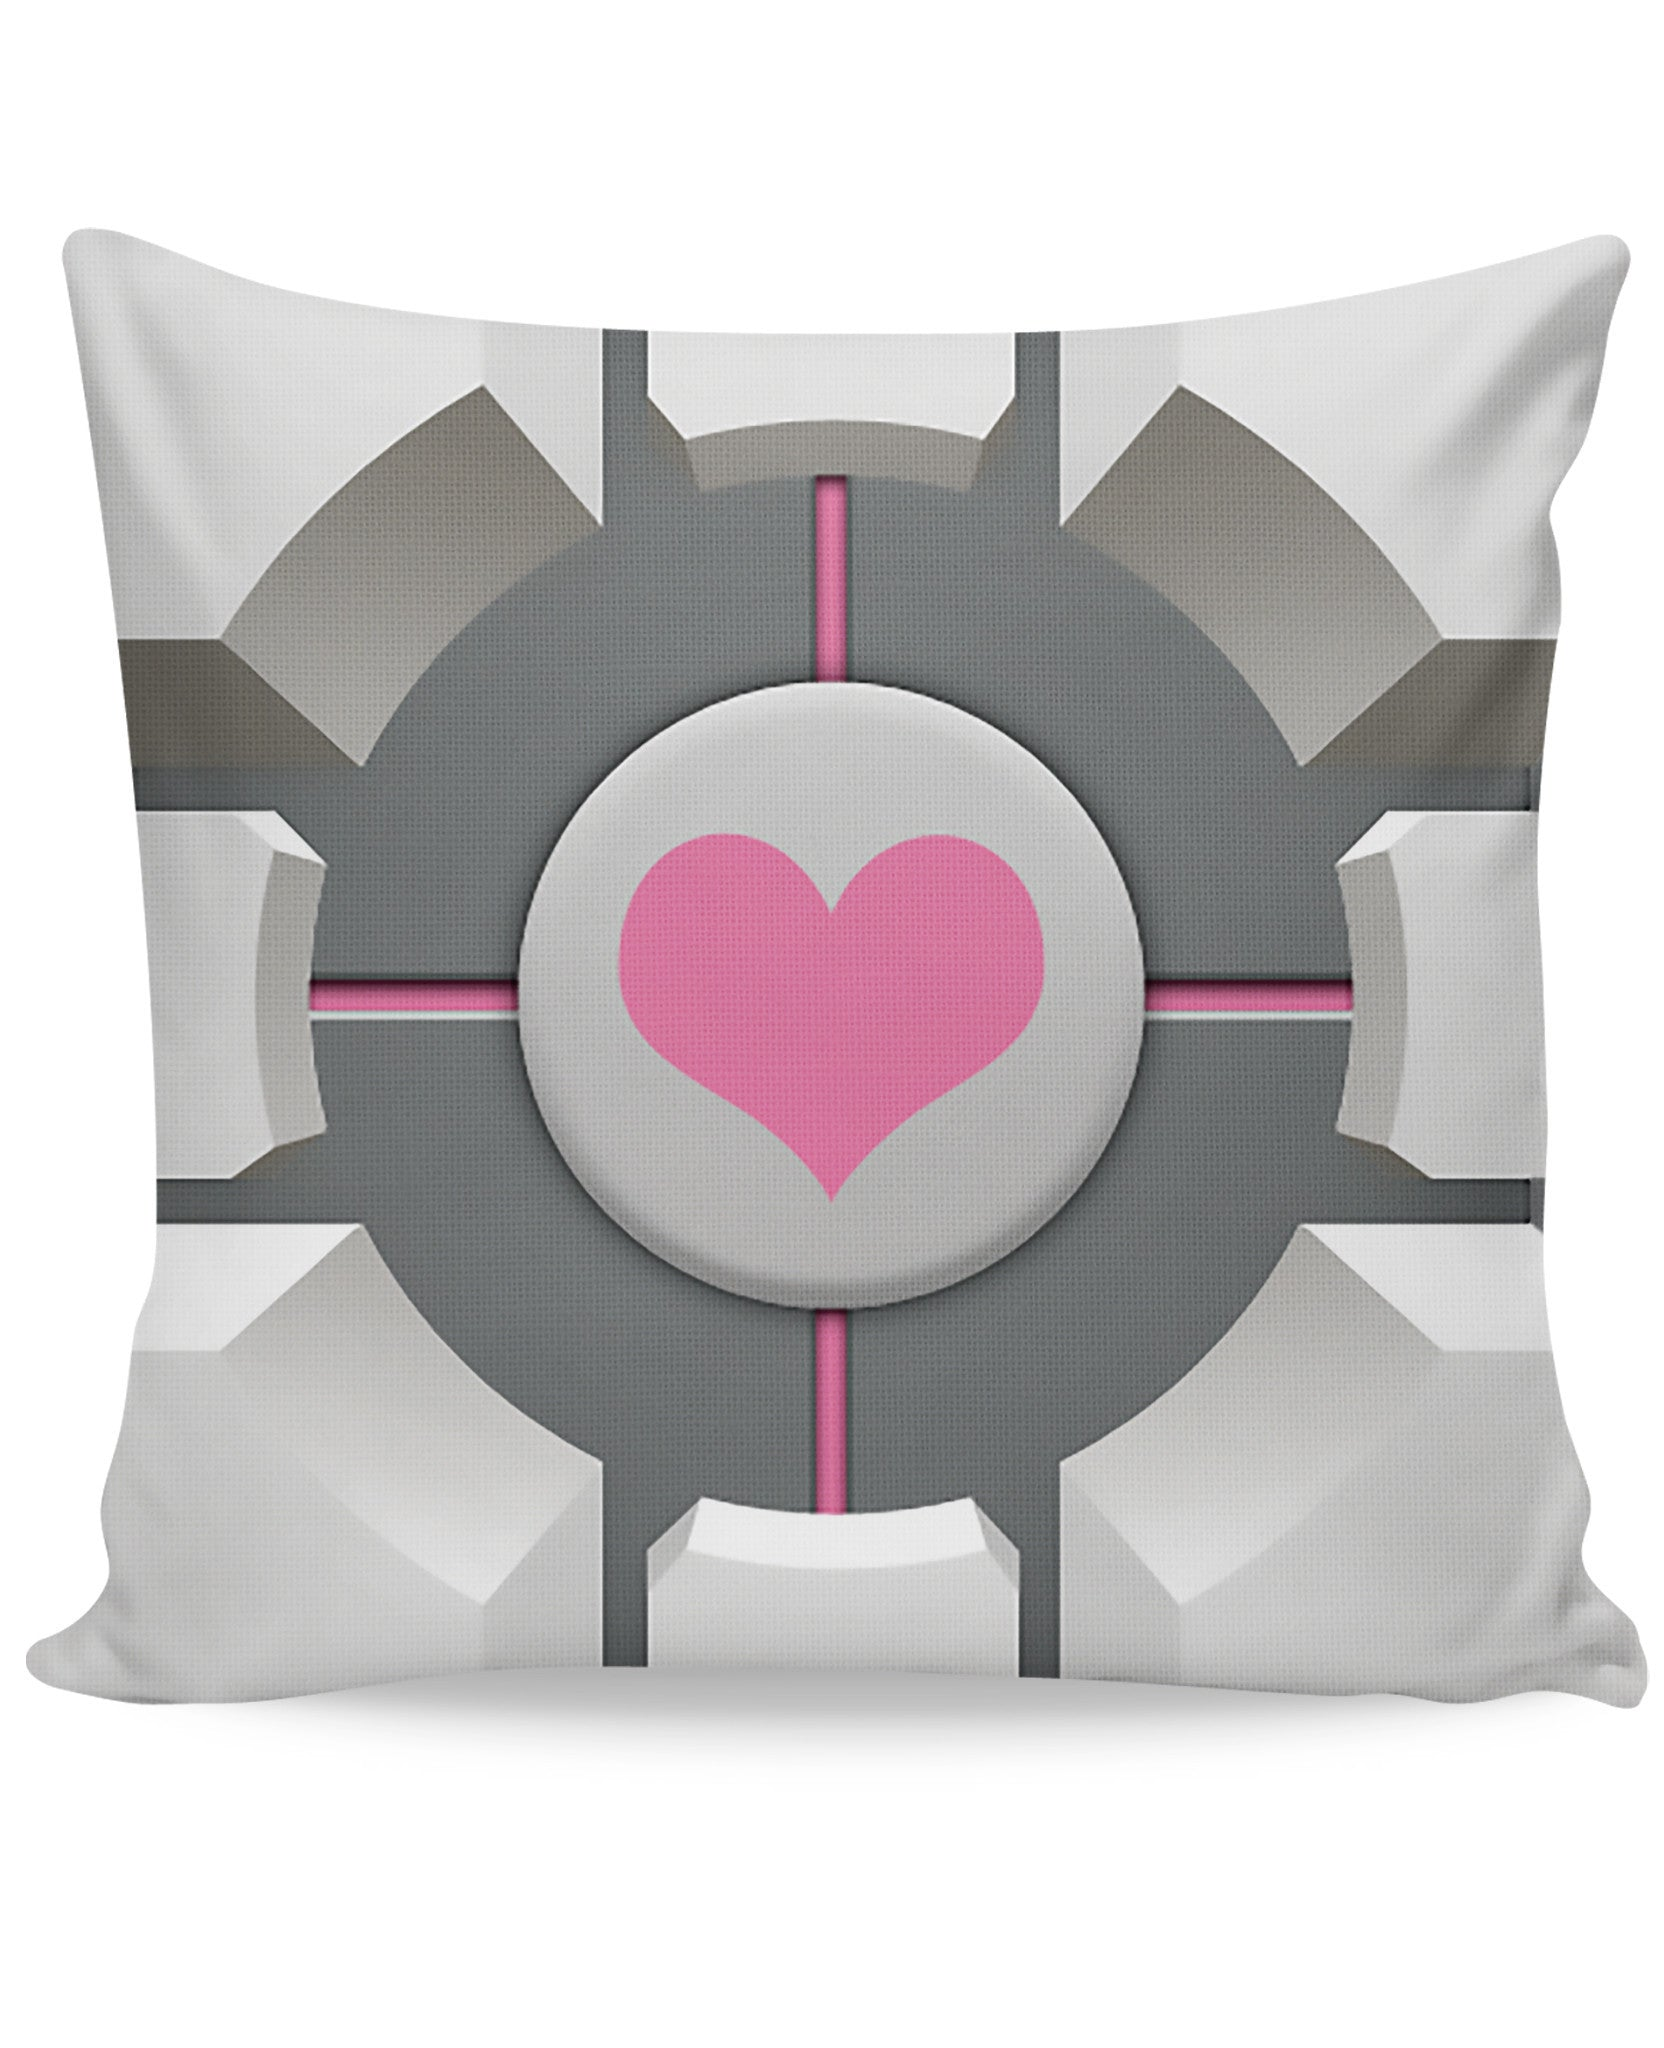 Companion Cube Couch Pillow